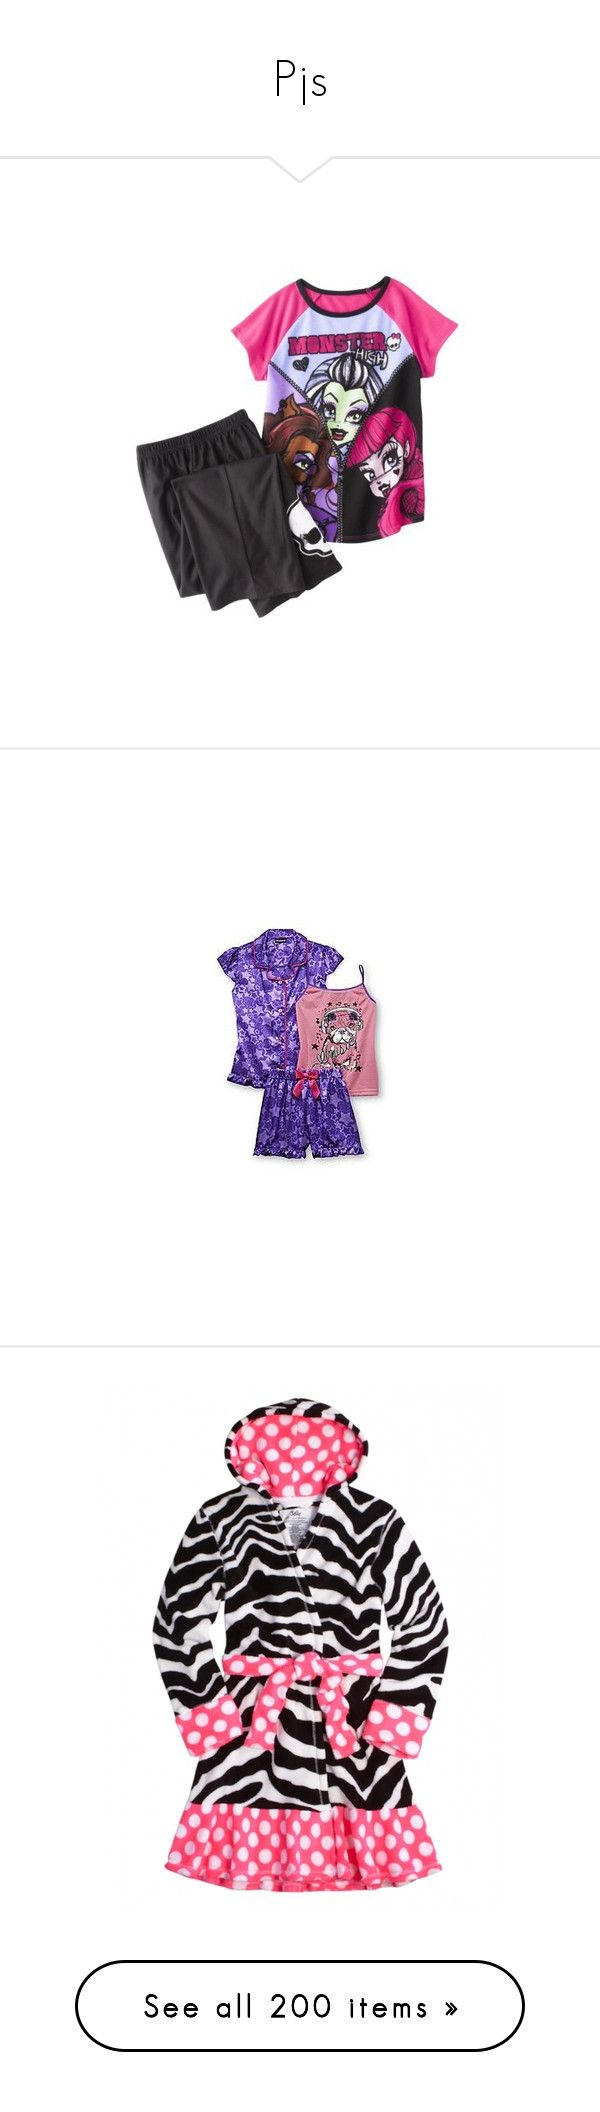 """""""Pjs"""" by princessdance12 ❤ liked on Polyvore featuring girls, kids clothes, intimates, sleepwear, pajamas, victoria secret pjs, victoria secret pyjamas, victoria's secret, victoria secret pajamas and victoria secret sleepwear"""